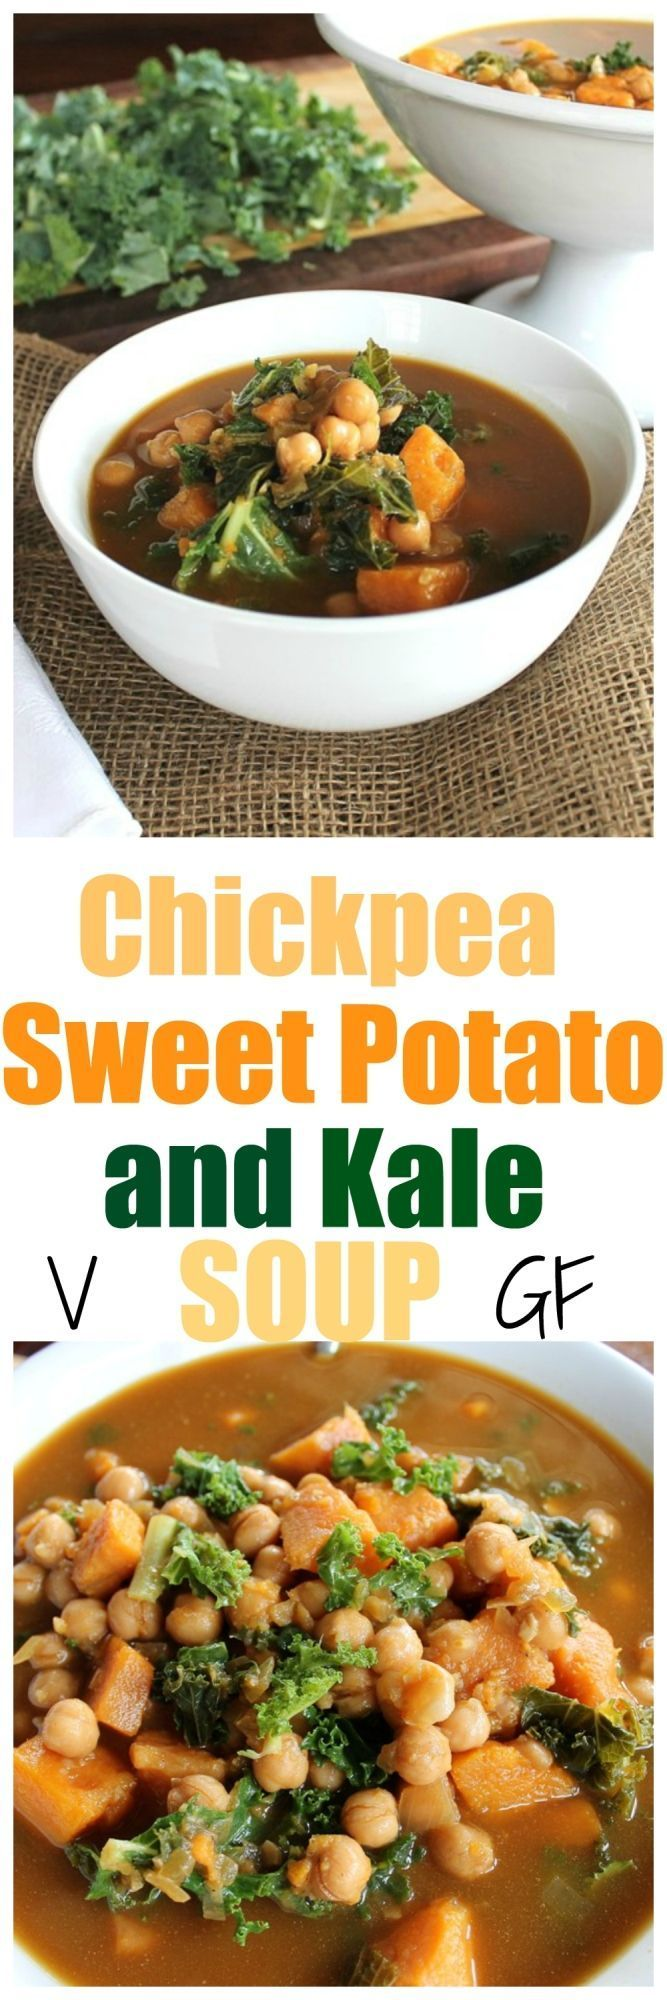 Chickpea, Sweet Potato and Kale Soup. So easy, full of flavor, protein, goodness and just a few ingredients. | TheVegan8.com | (Vegan Potato Kale)